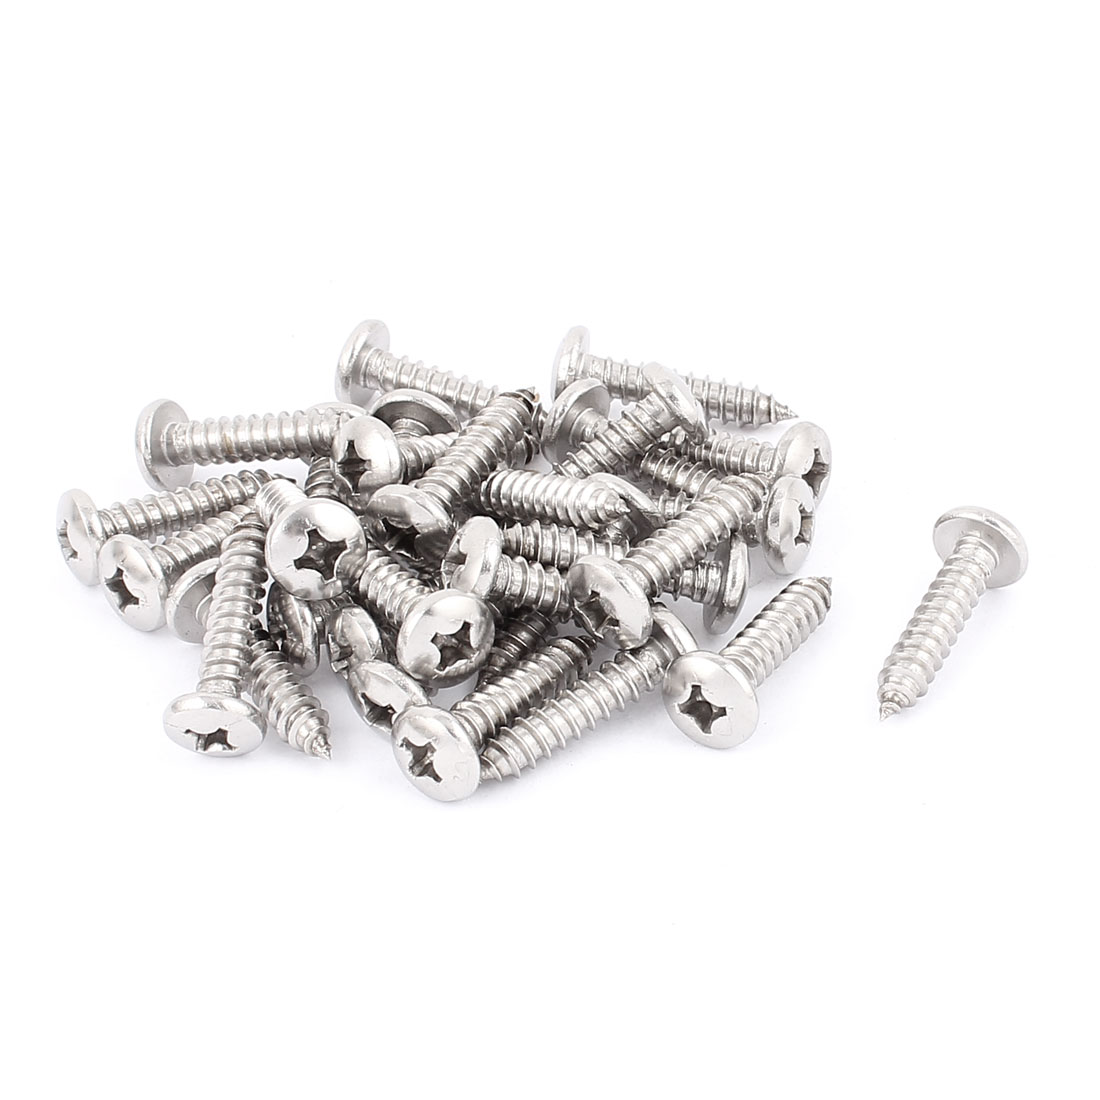 5.5mm x 28mm Phillips Cross Drive Pan Head Self Tapping Screw Fasteners Silver Tone 30 Pcs